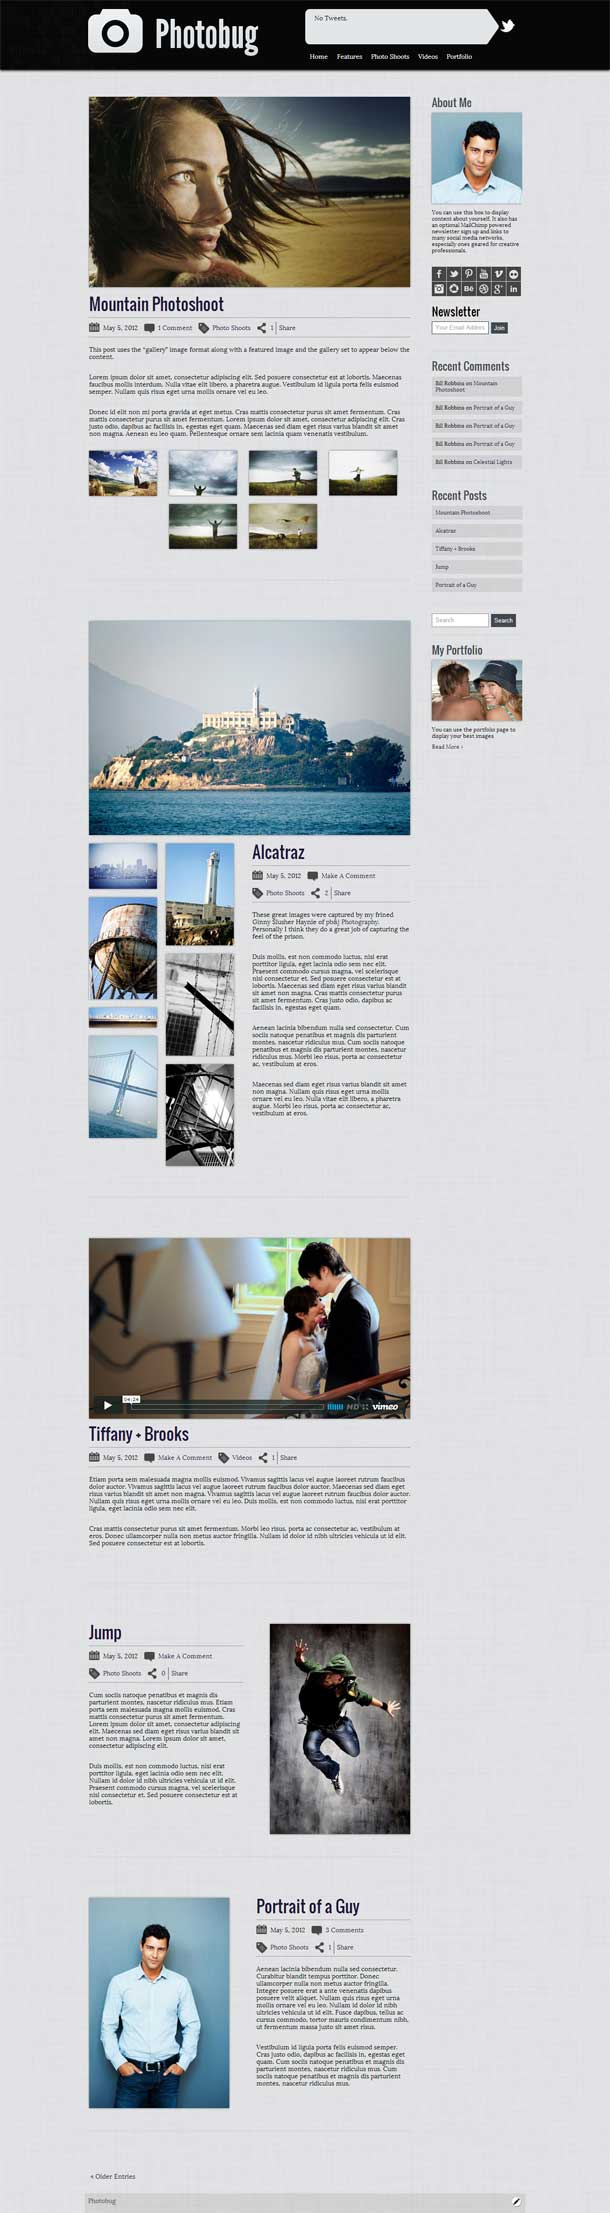 Photobug Video Theme Image